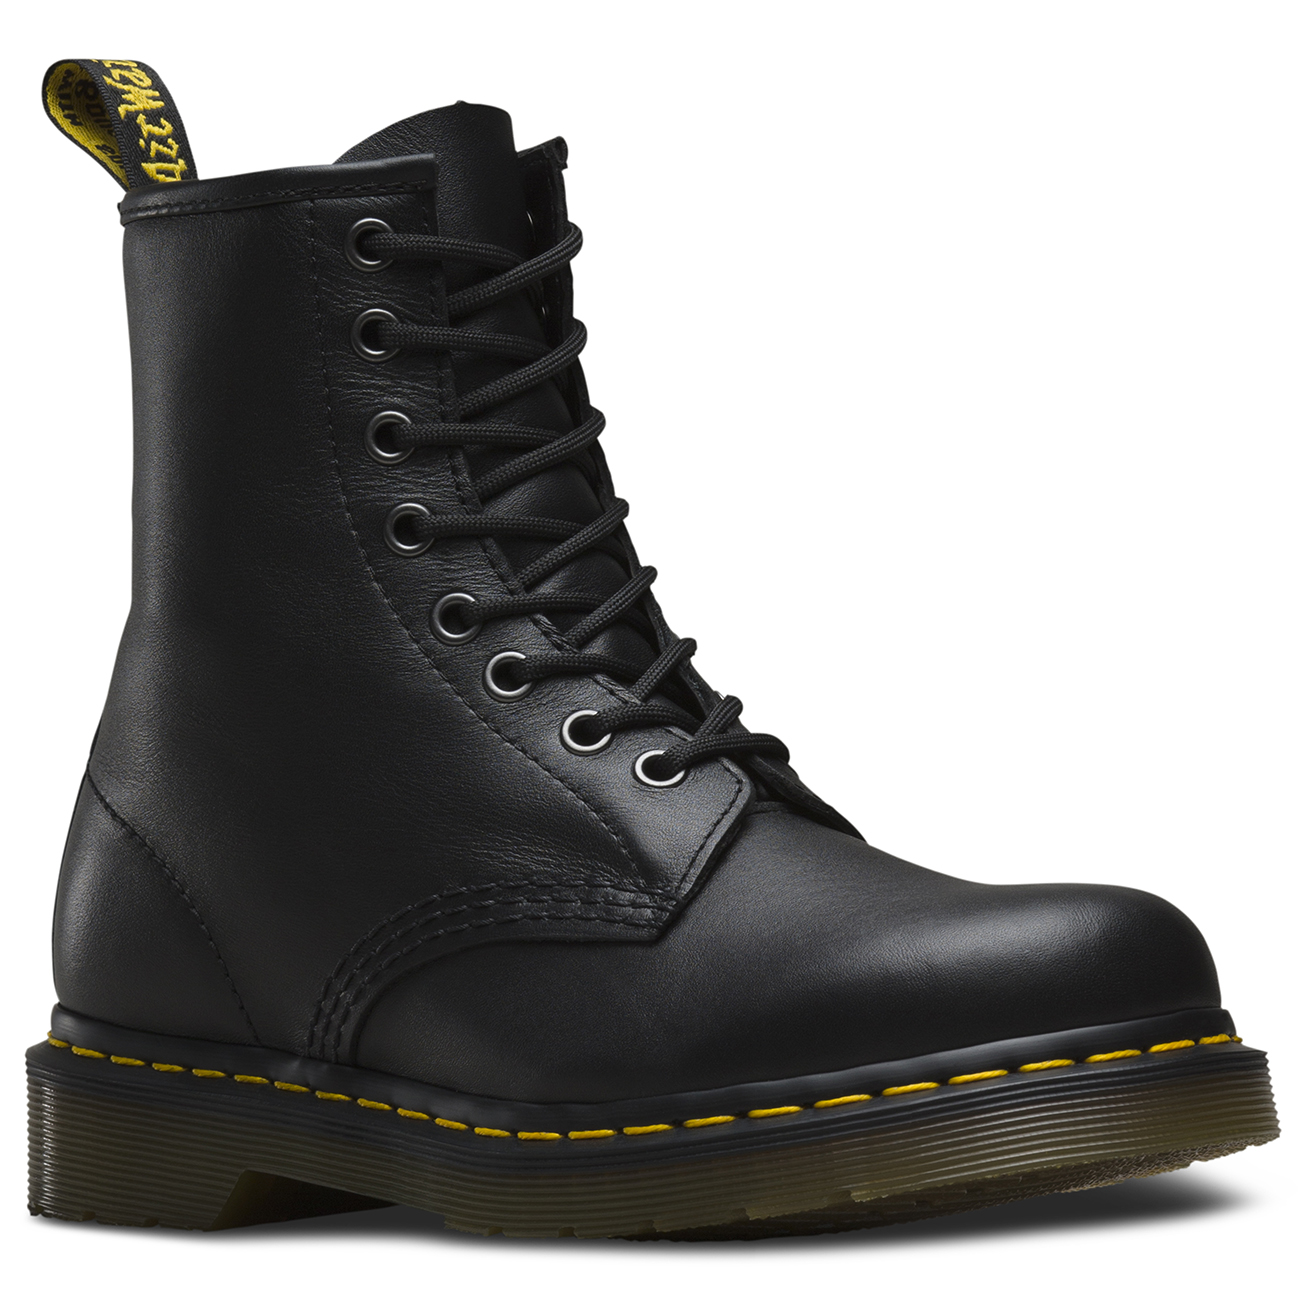 Unisex Adults Dr Martens 1460 Nappa